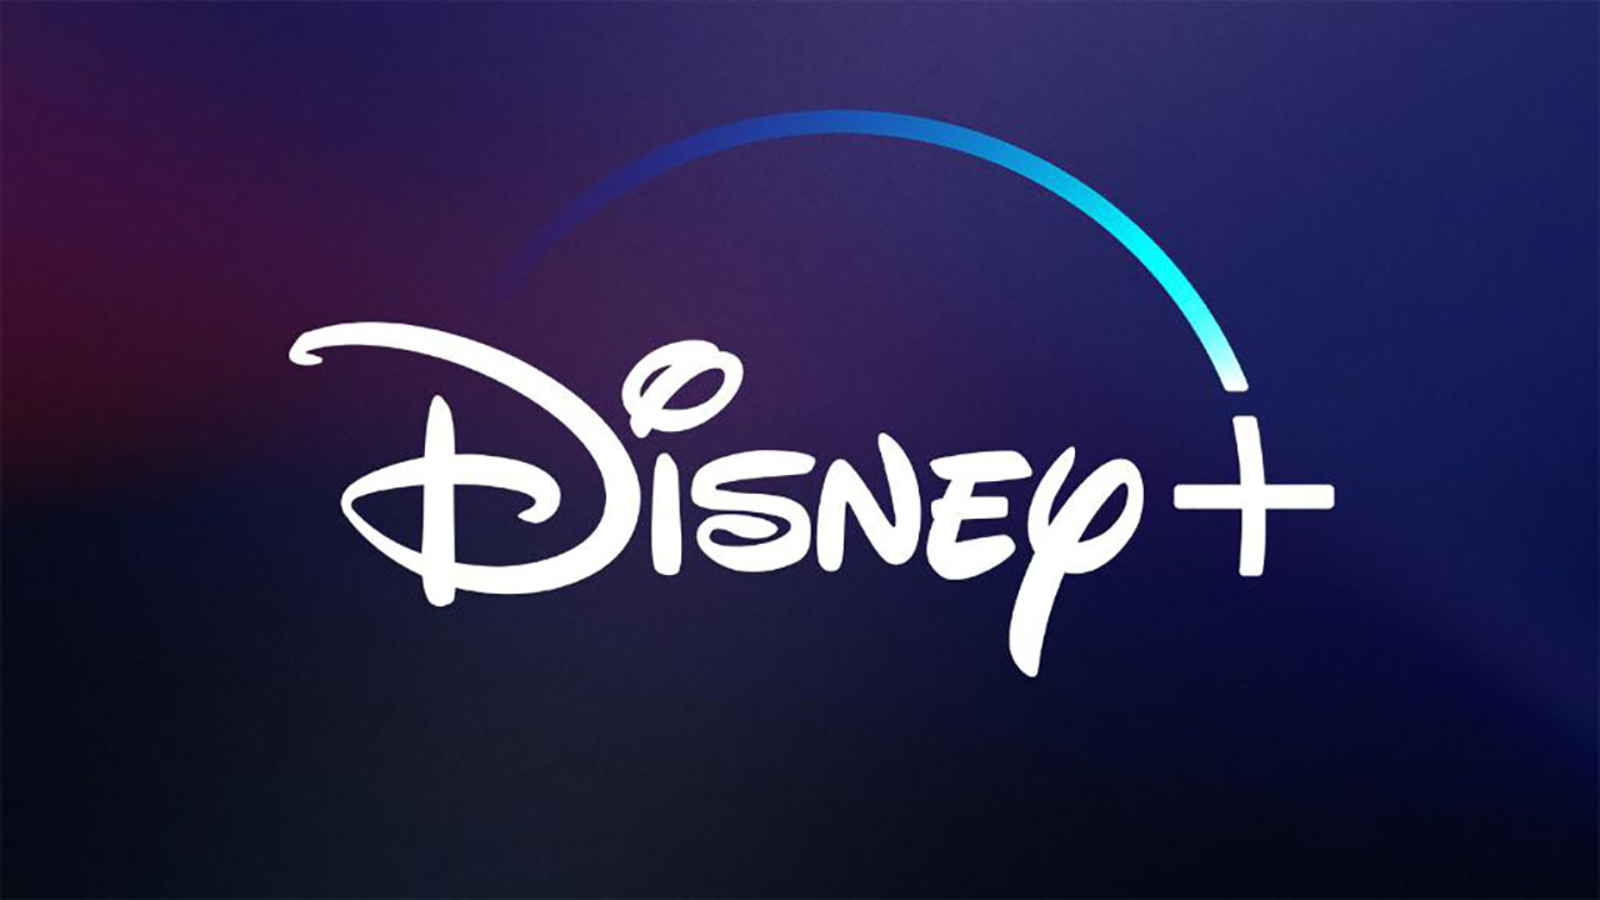 Releases Coming to Disney+ in 2021